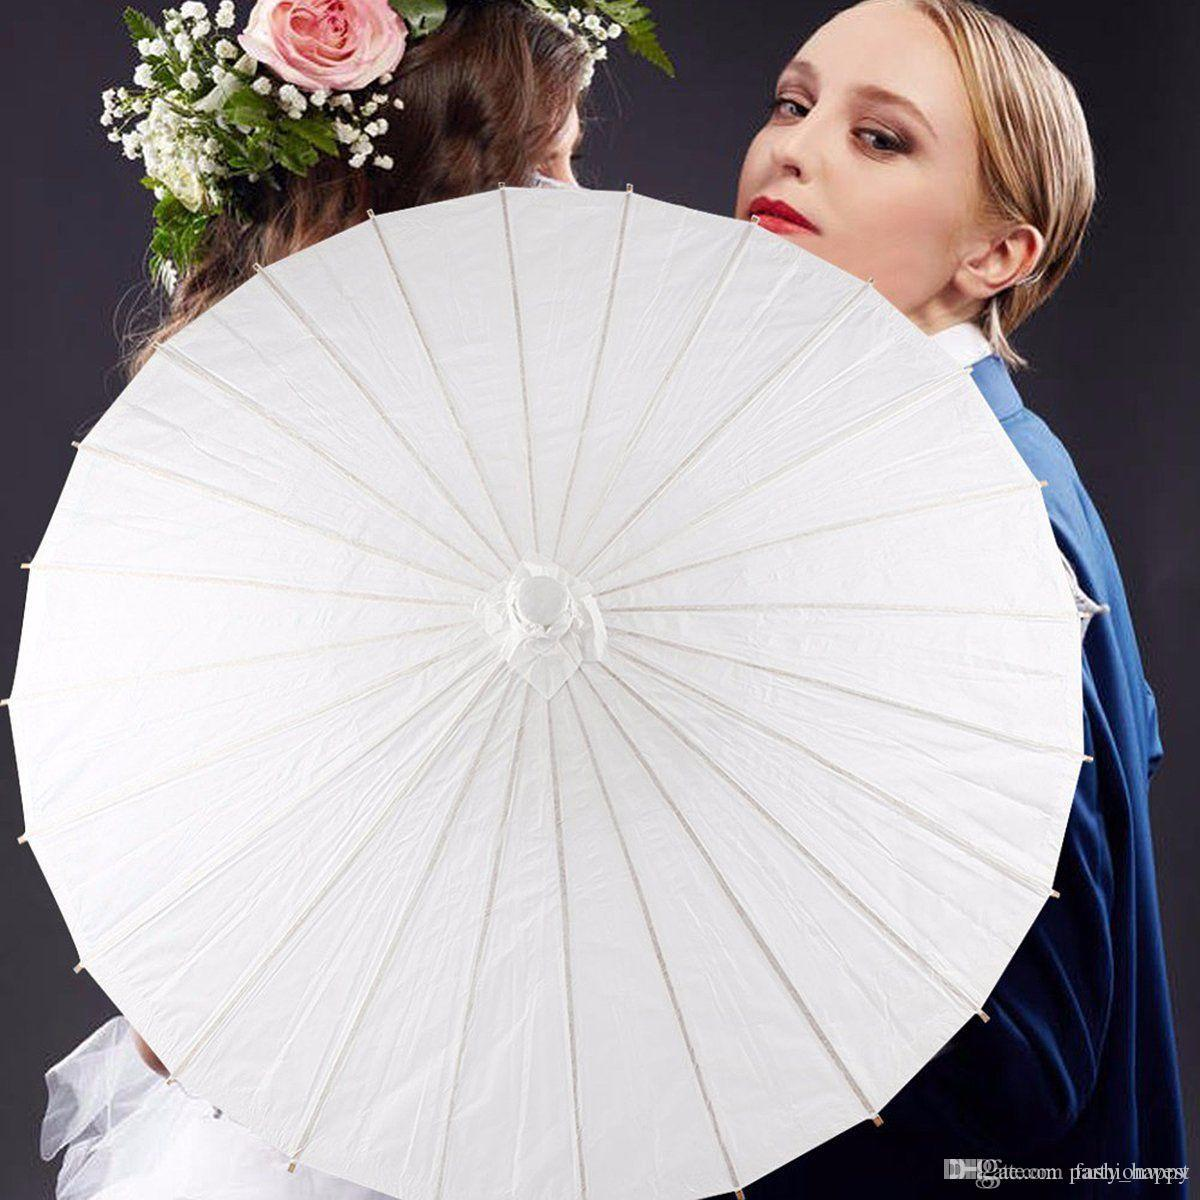 3 Tamaño de papel de bambú blanco Parasol Parasol Bailando Wedding Party Coasplay Art